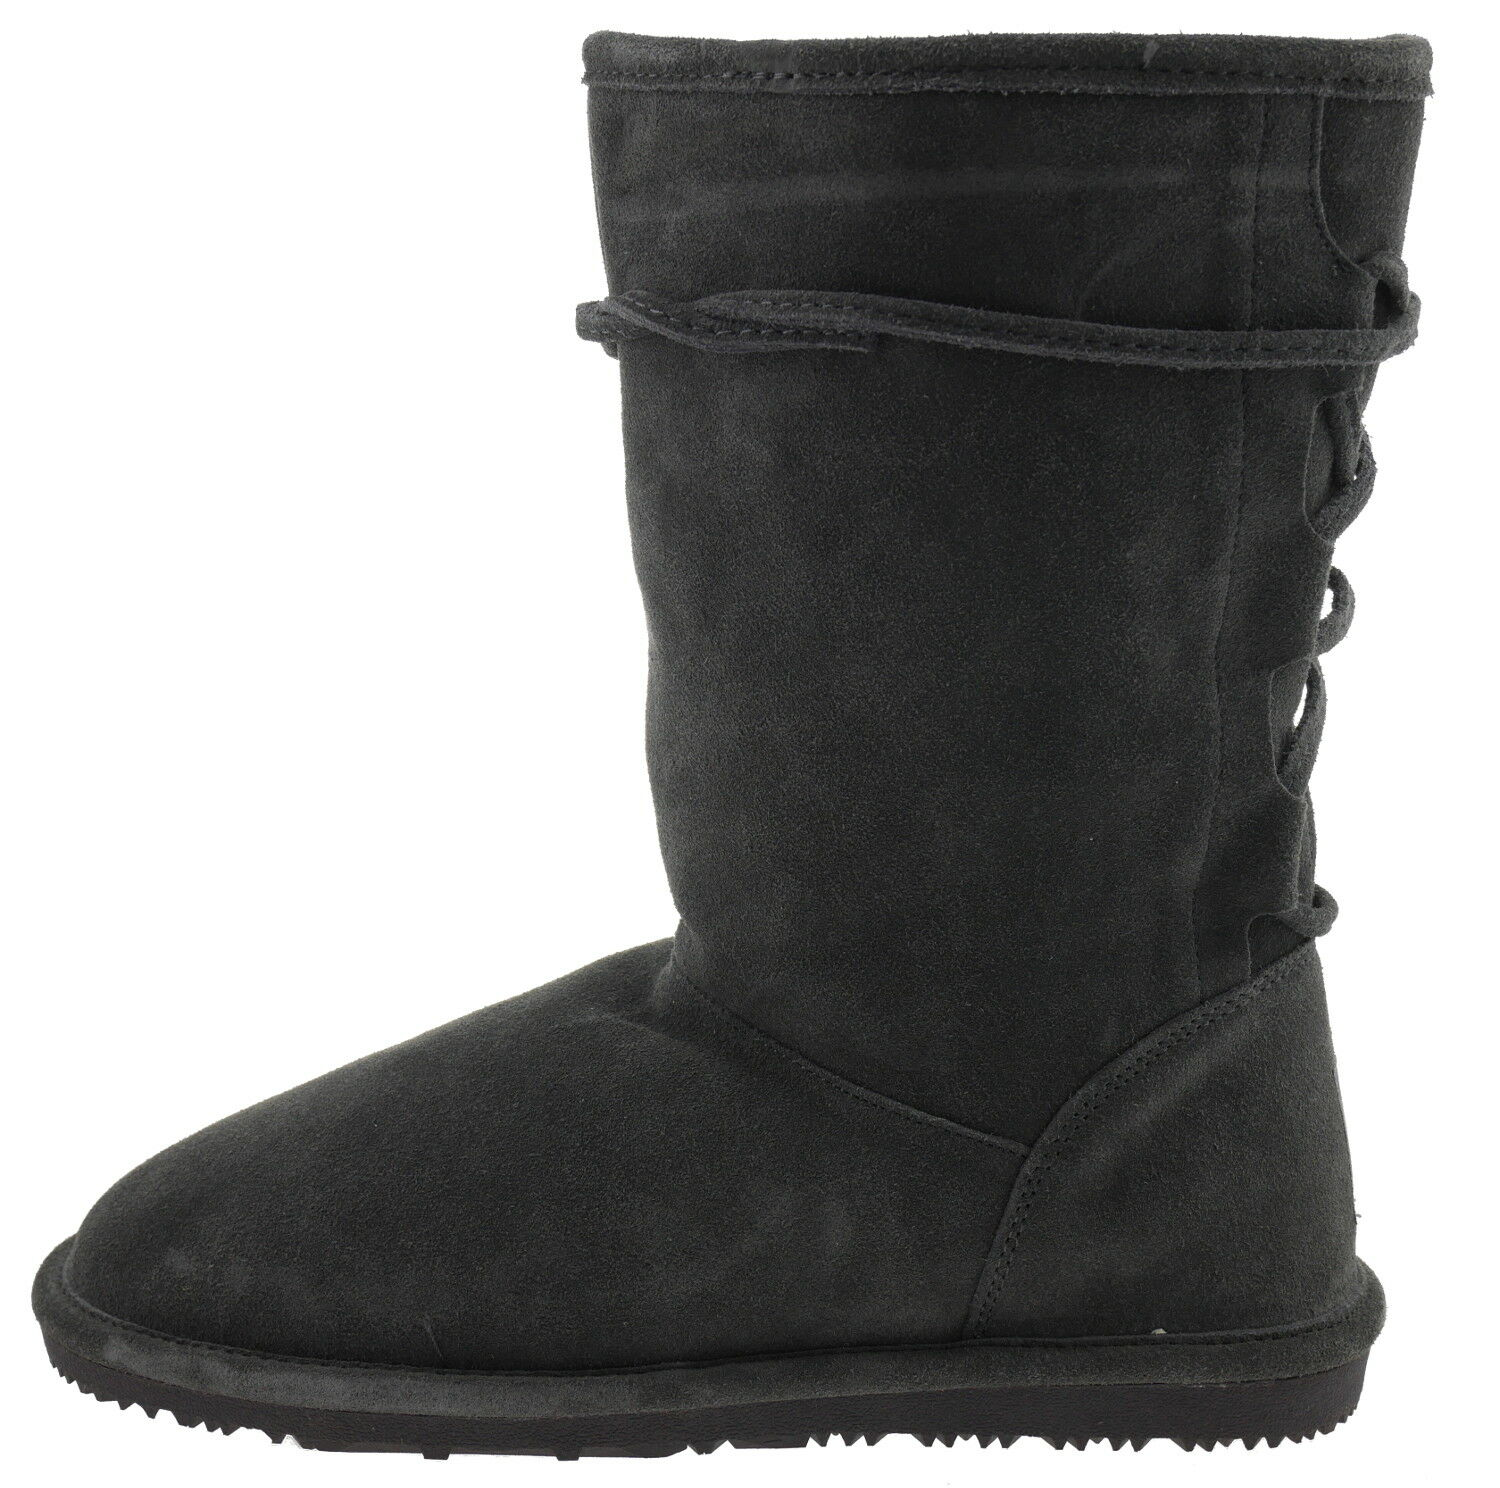 502162-1593 gooce Helene 15135 Bottes D'Hiver Doubleure Cuir Anthracite EUR 42